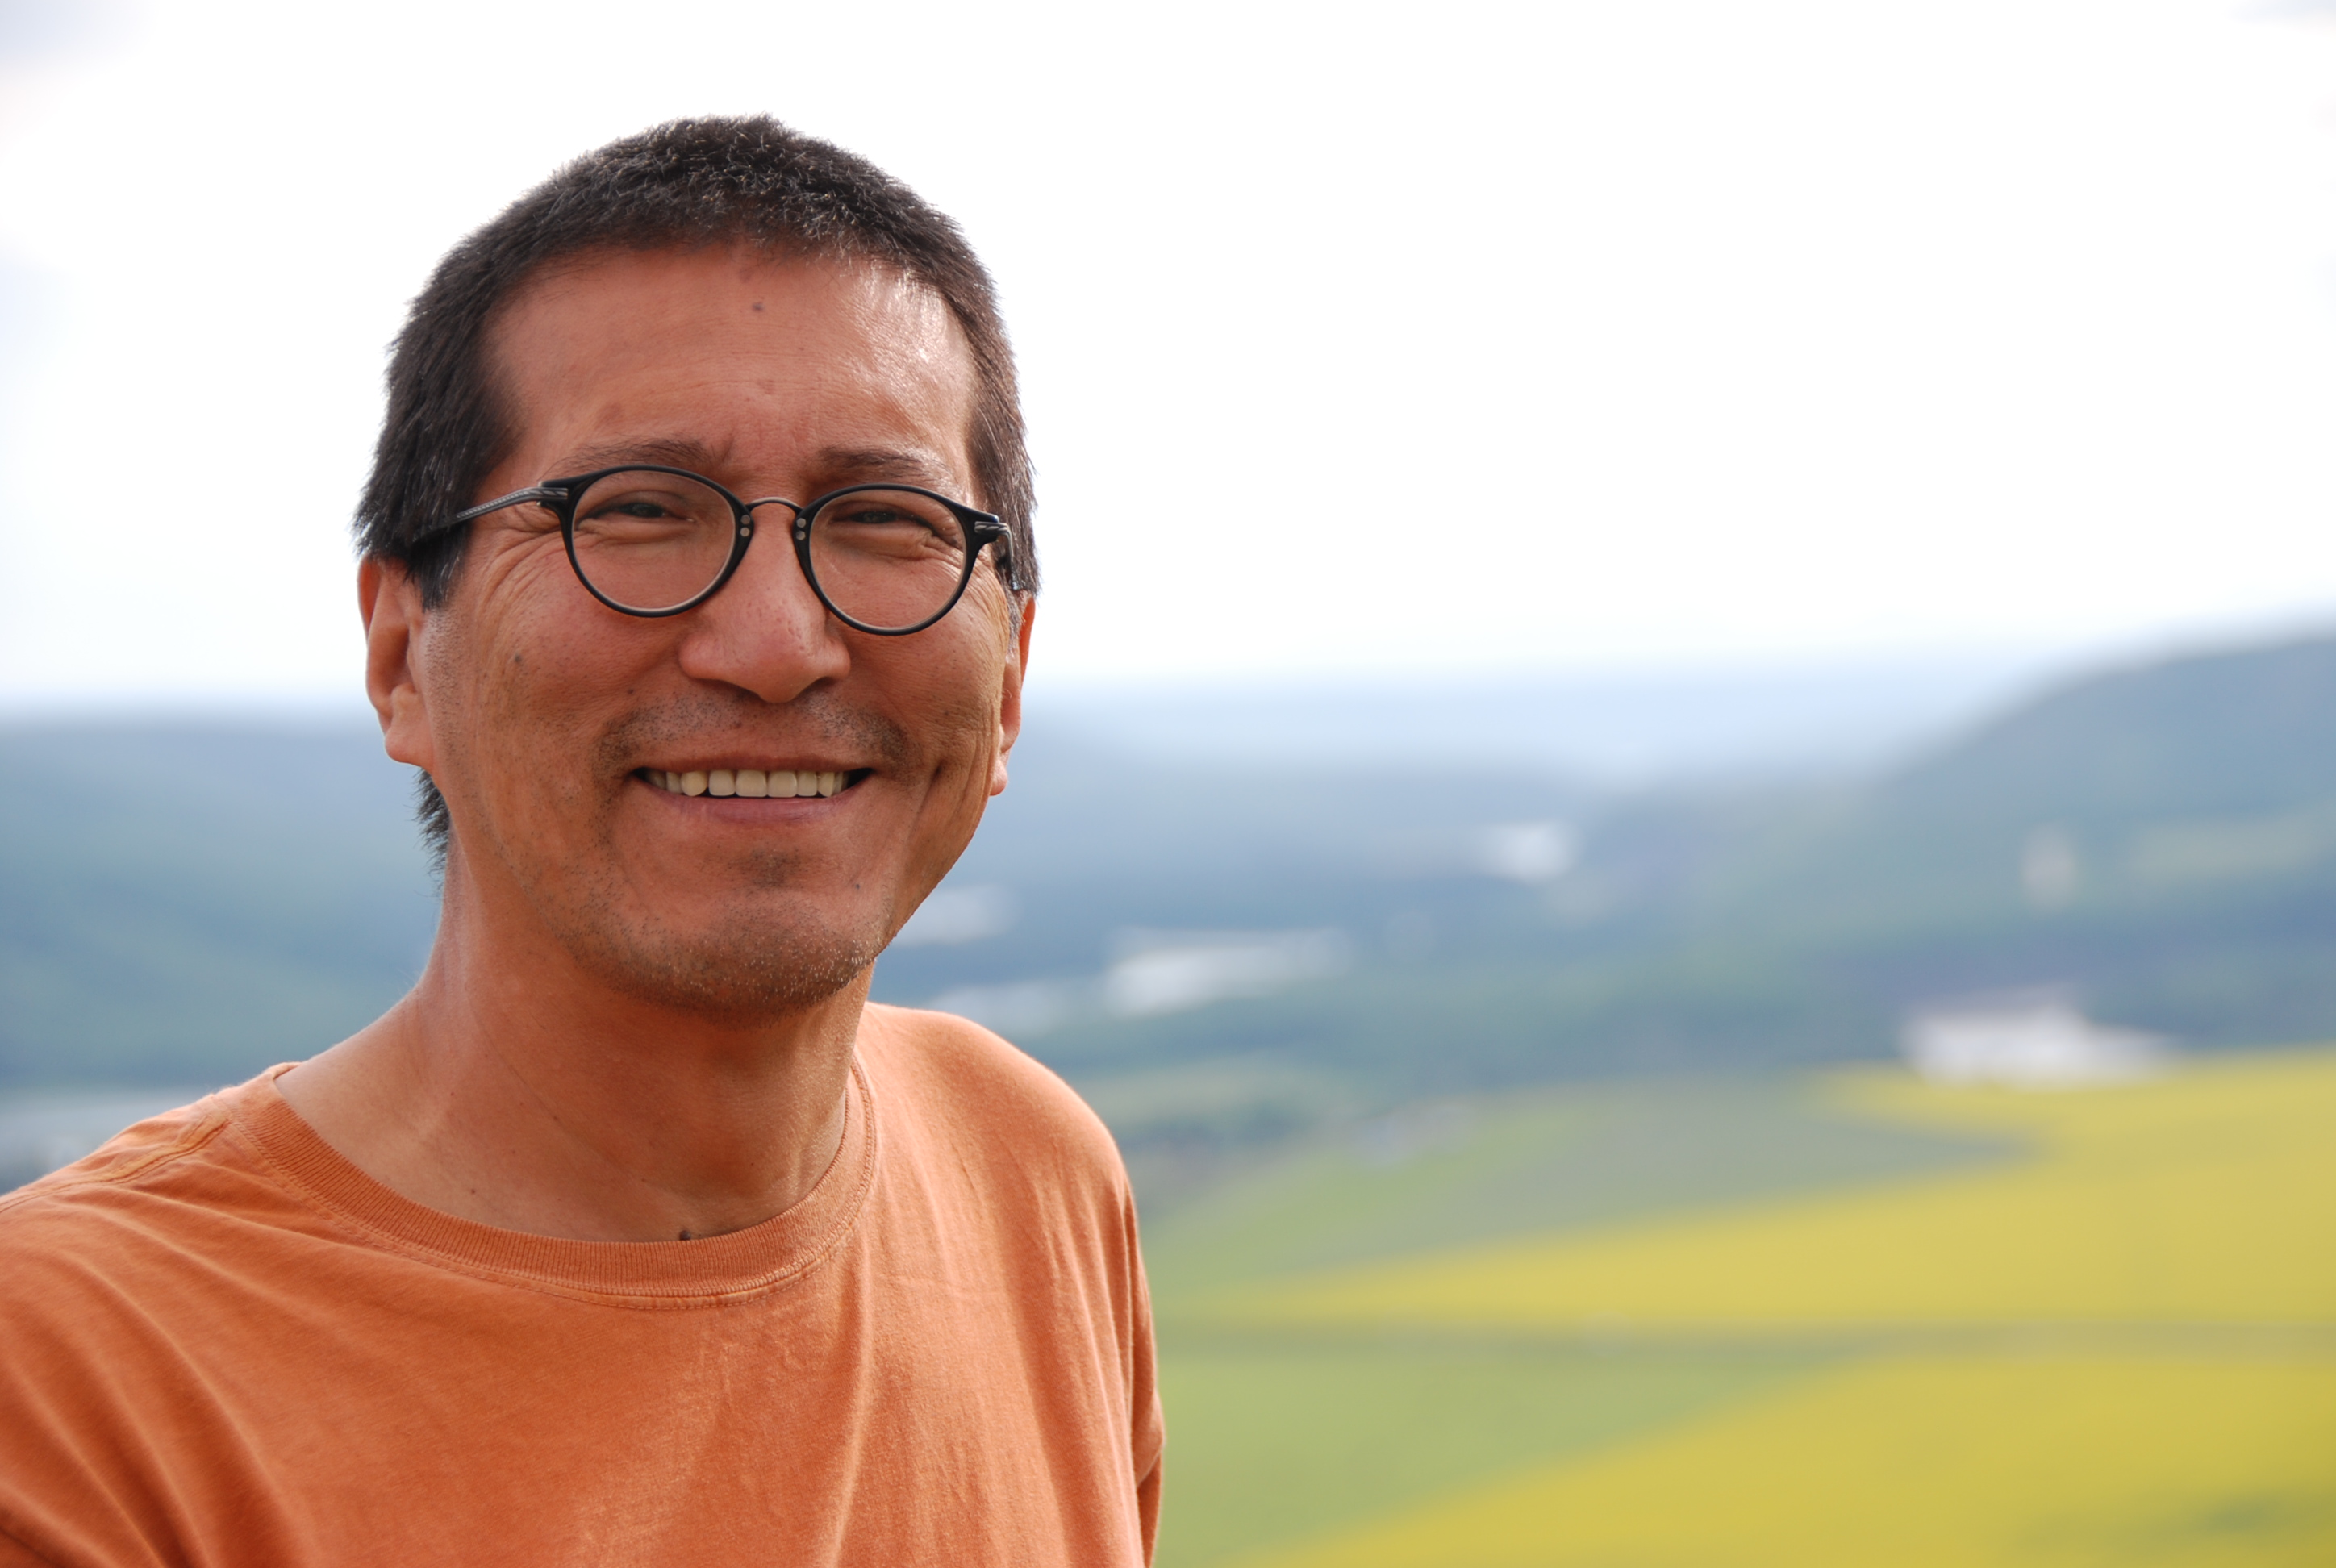 RichardWagamese2